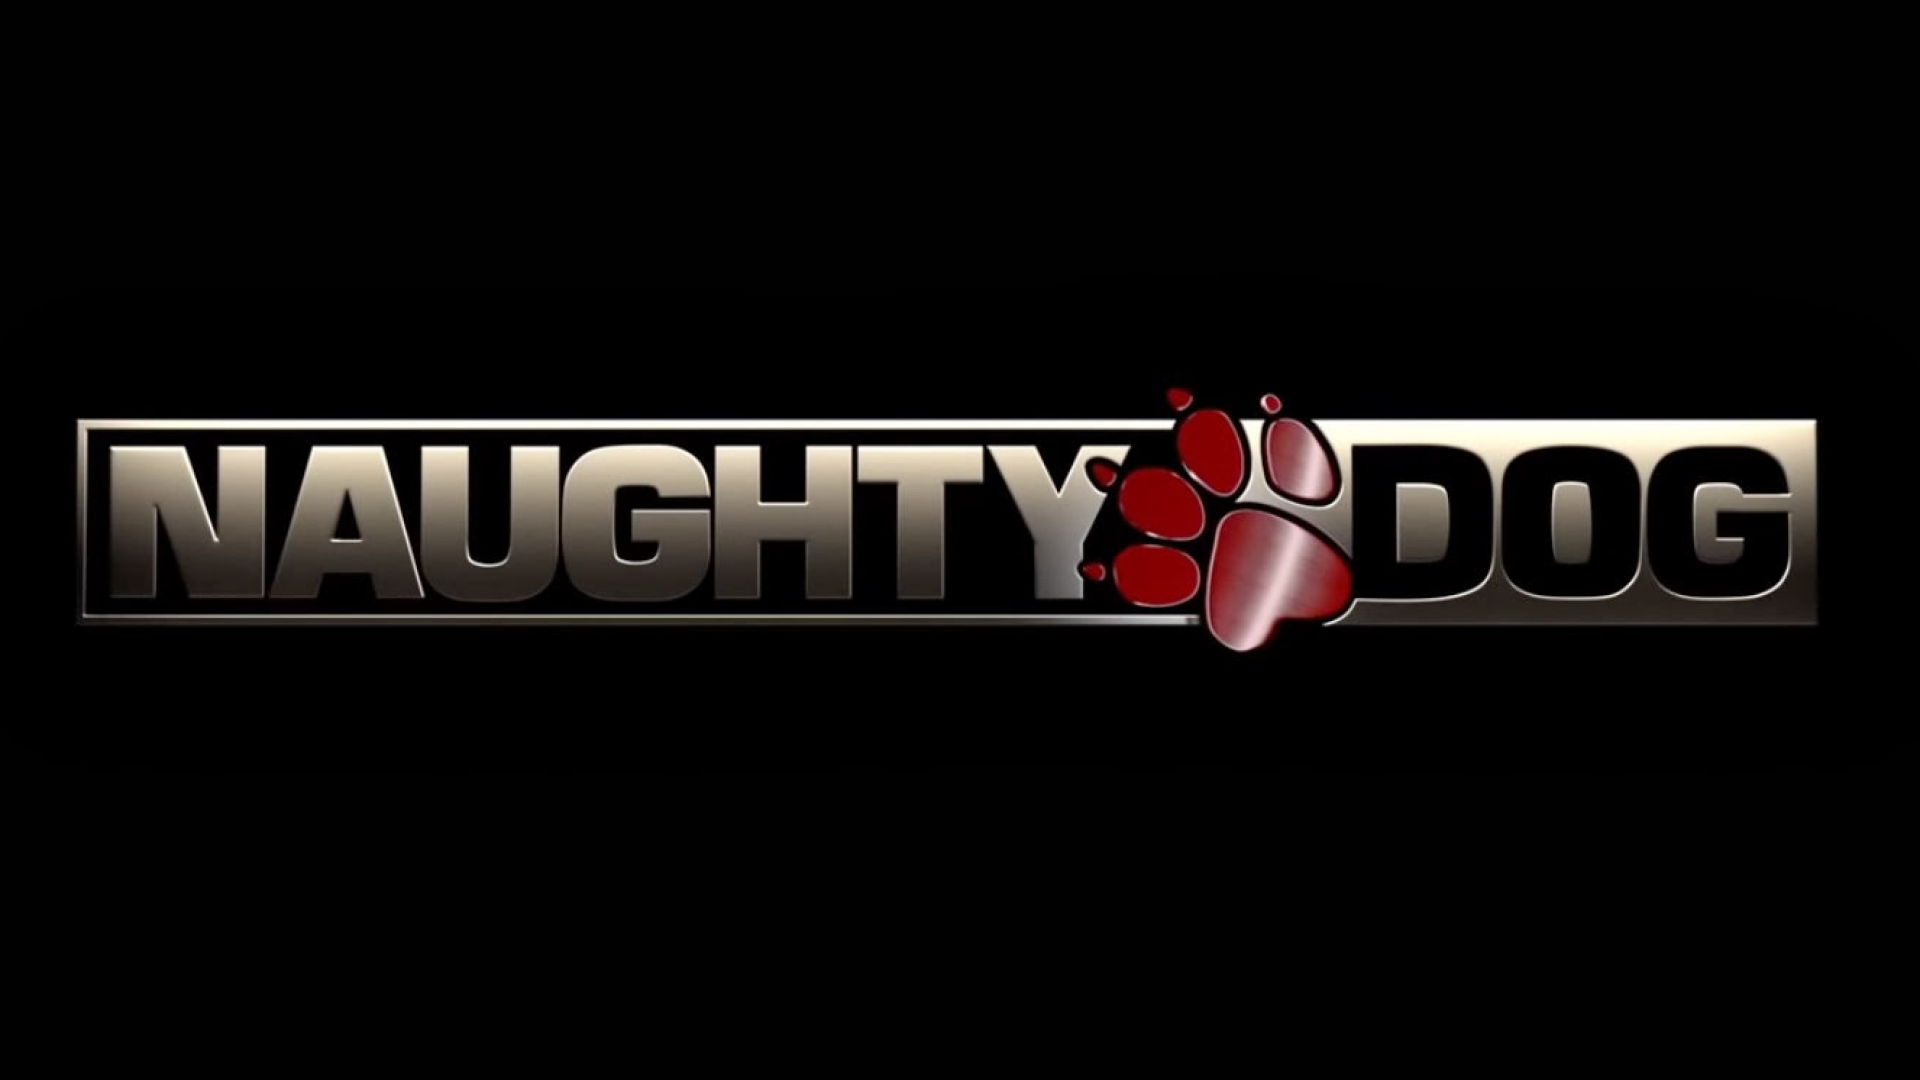 Naughty Dog Wallpaper